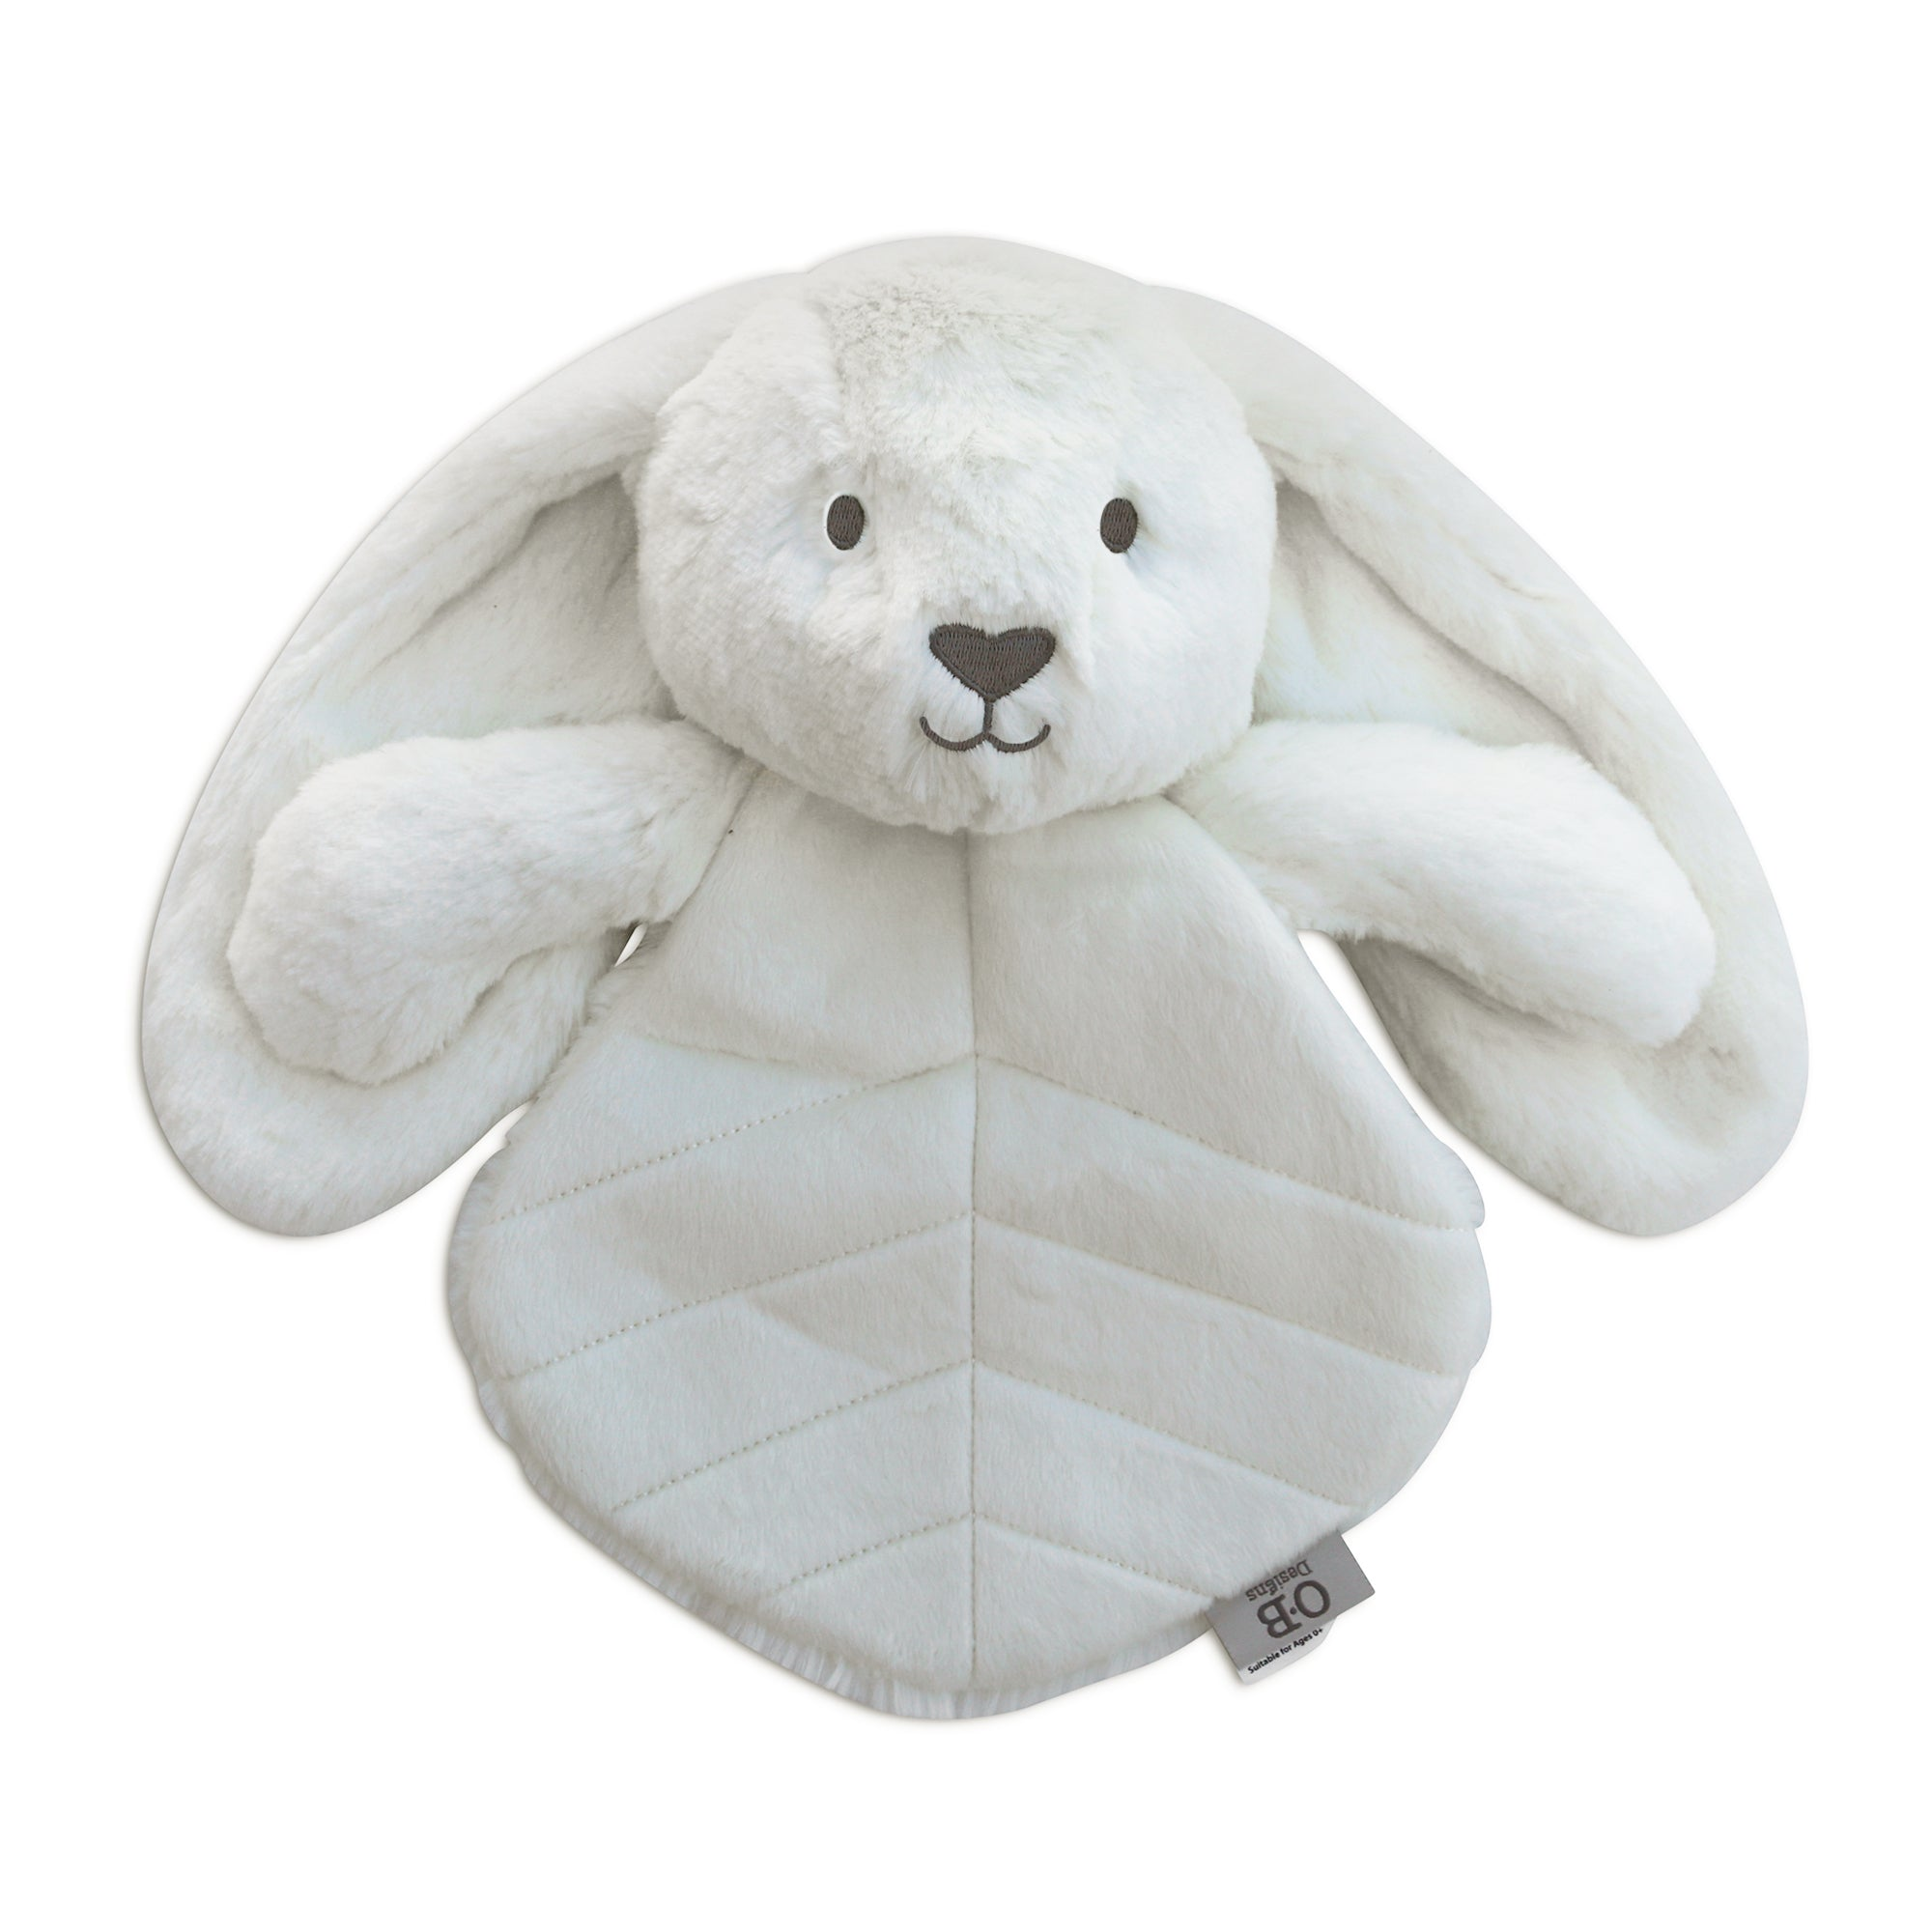 Beck Bunny | Baby Comforter by OB Designs  - Easter